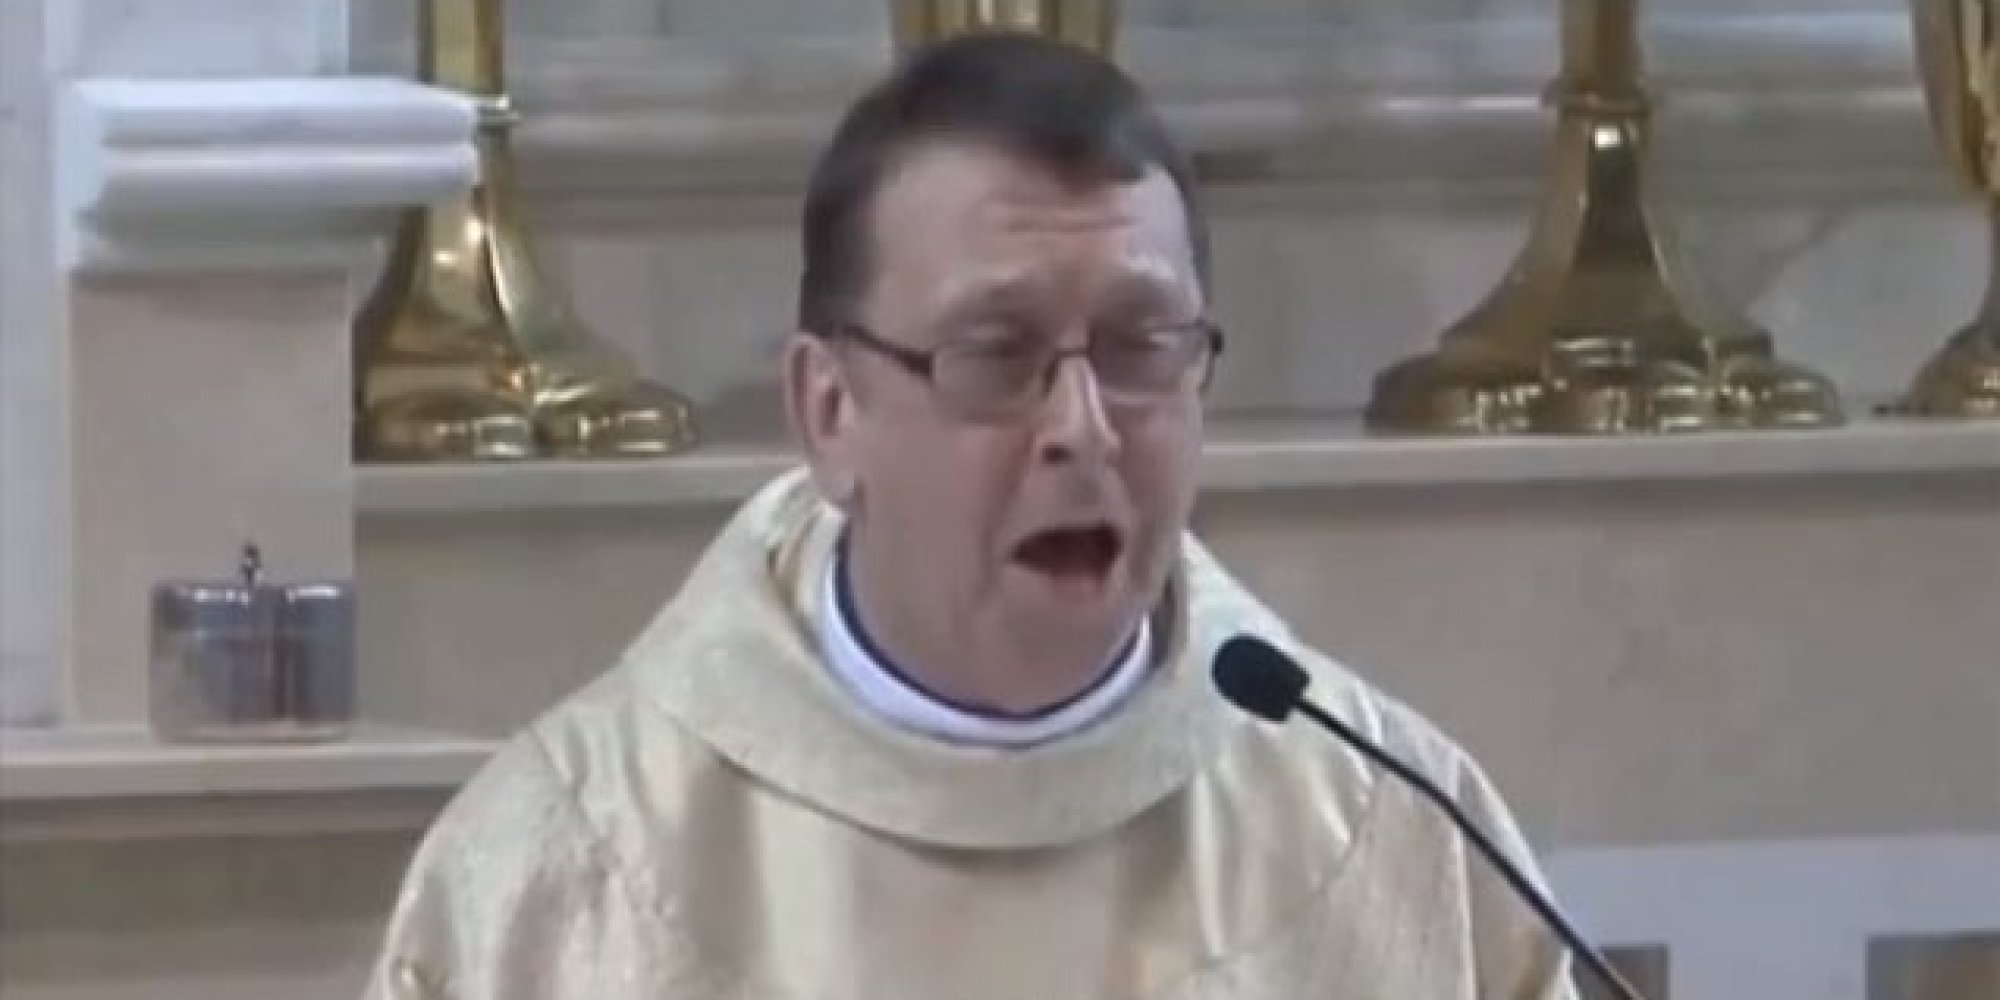 Father ray kelly